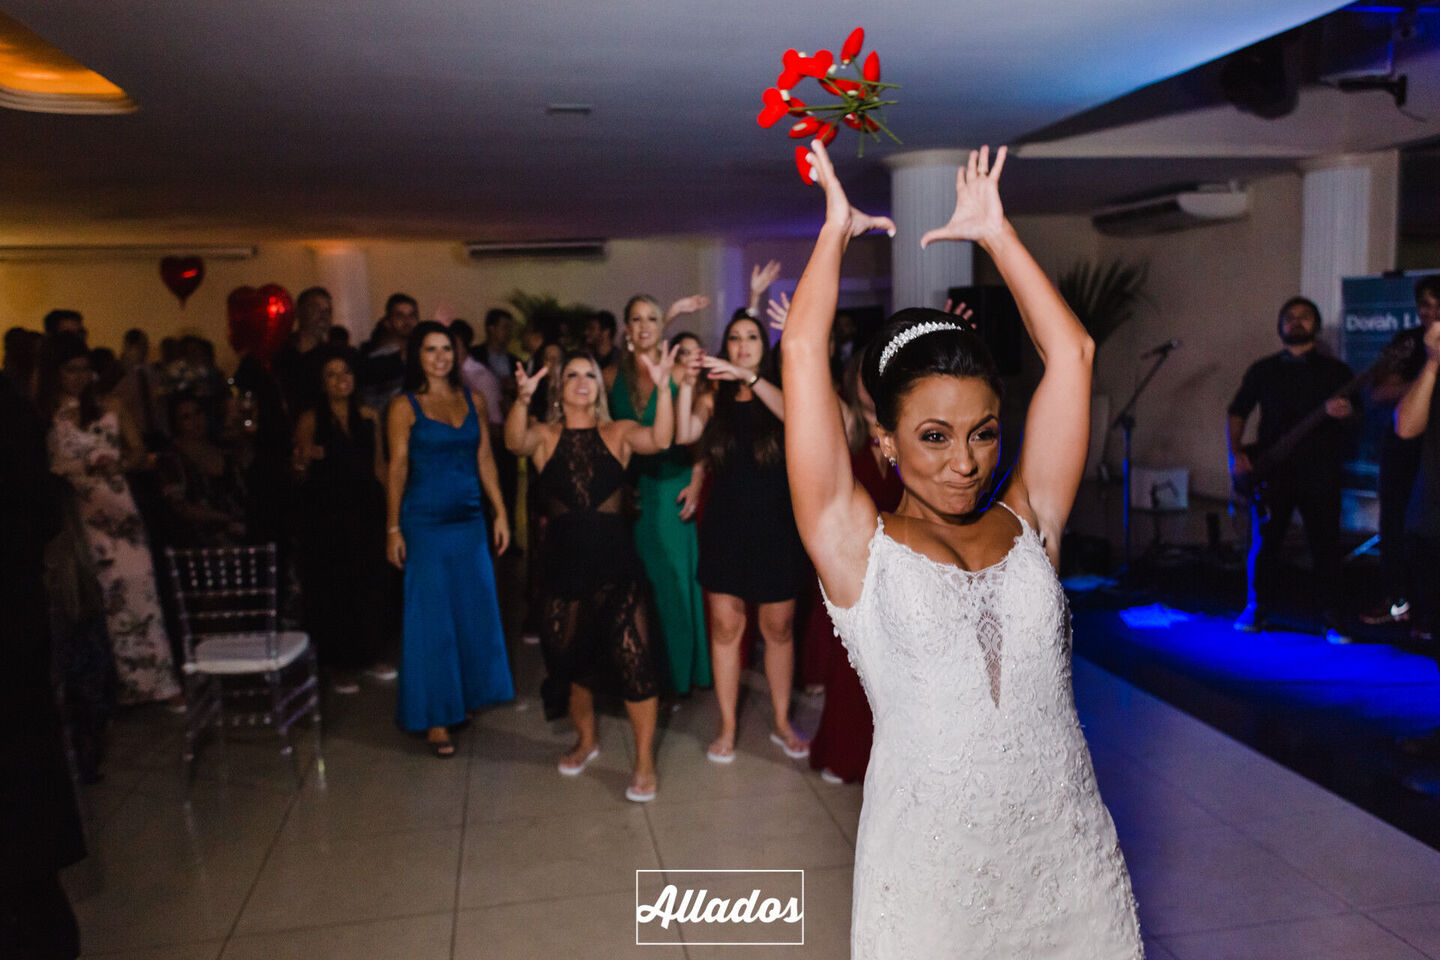 After Wedding: Juliana + Renato